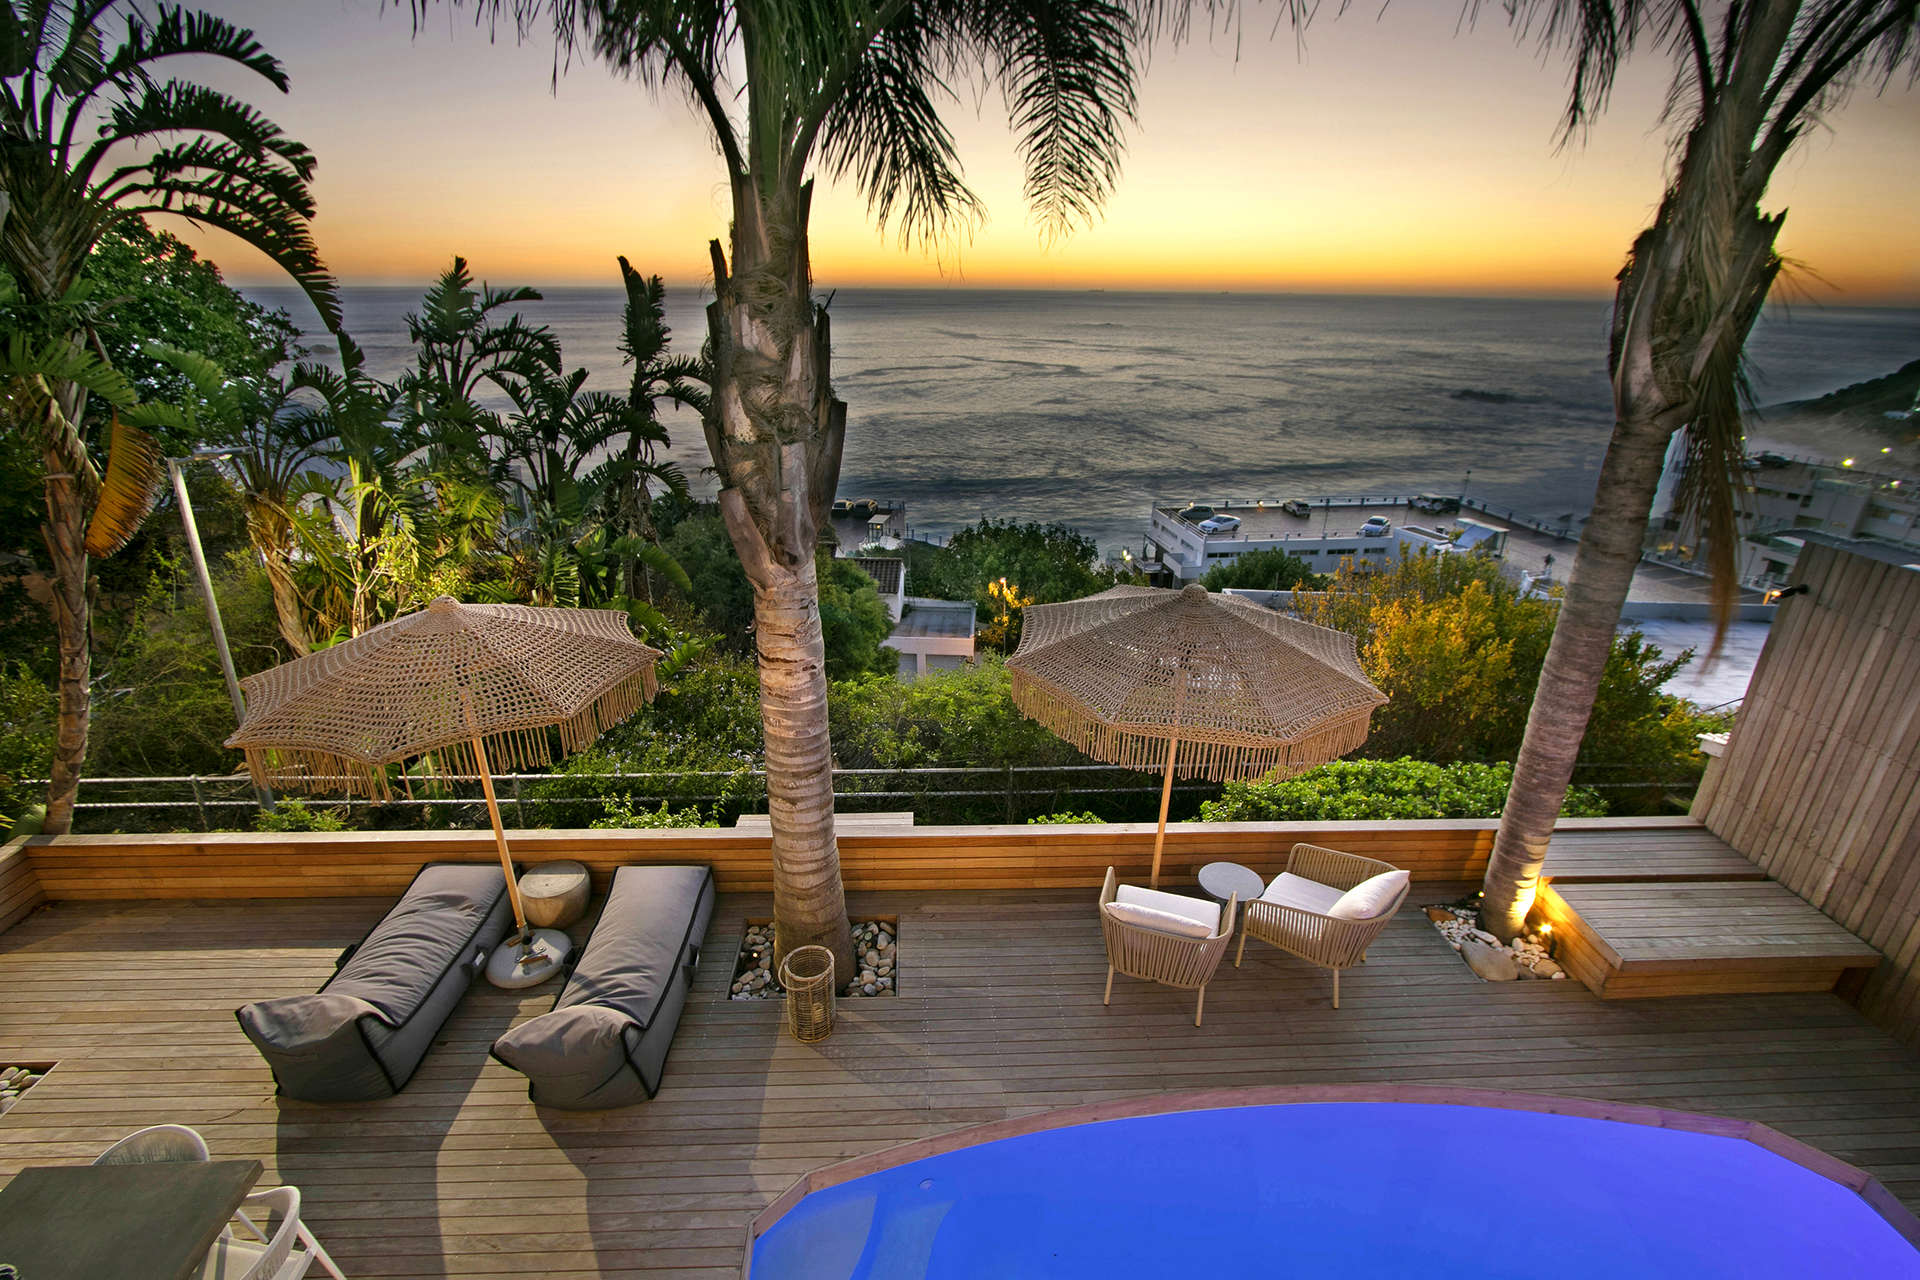 Luxury villa rentals africa - South africa - Capetown - Camps bay ct - Clifton Splendour - Image 1/26